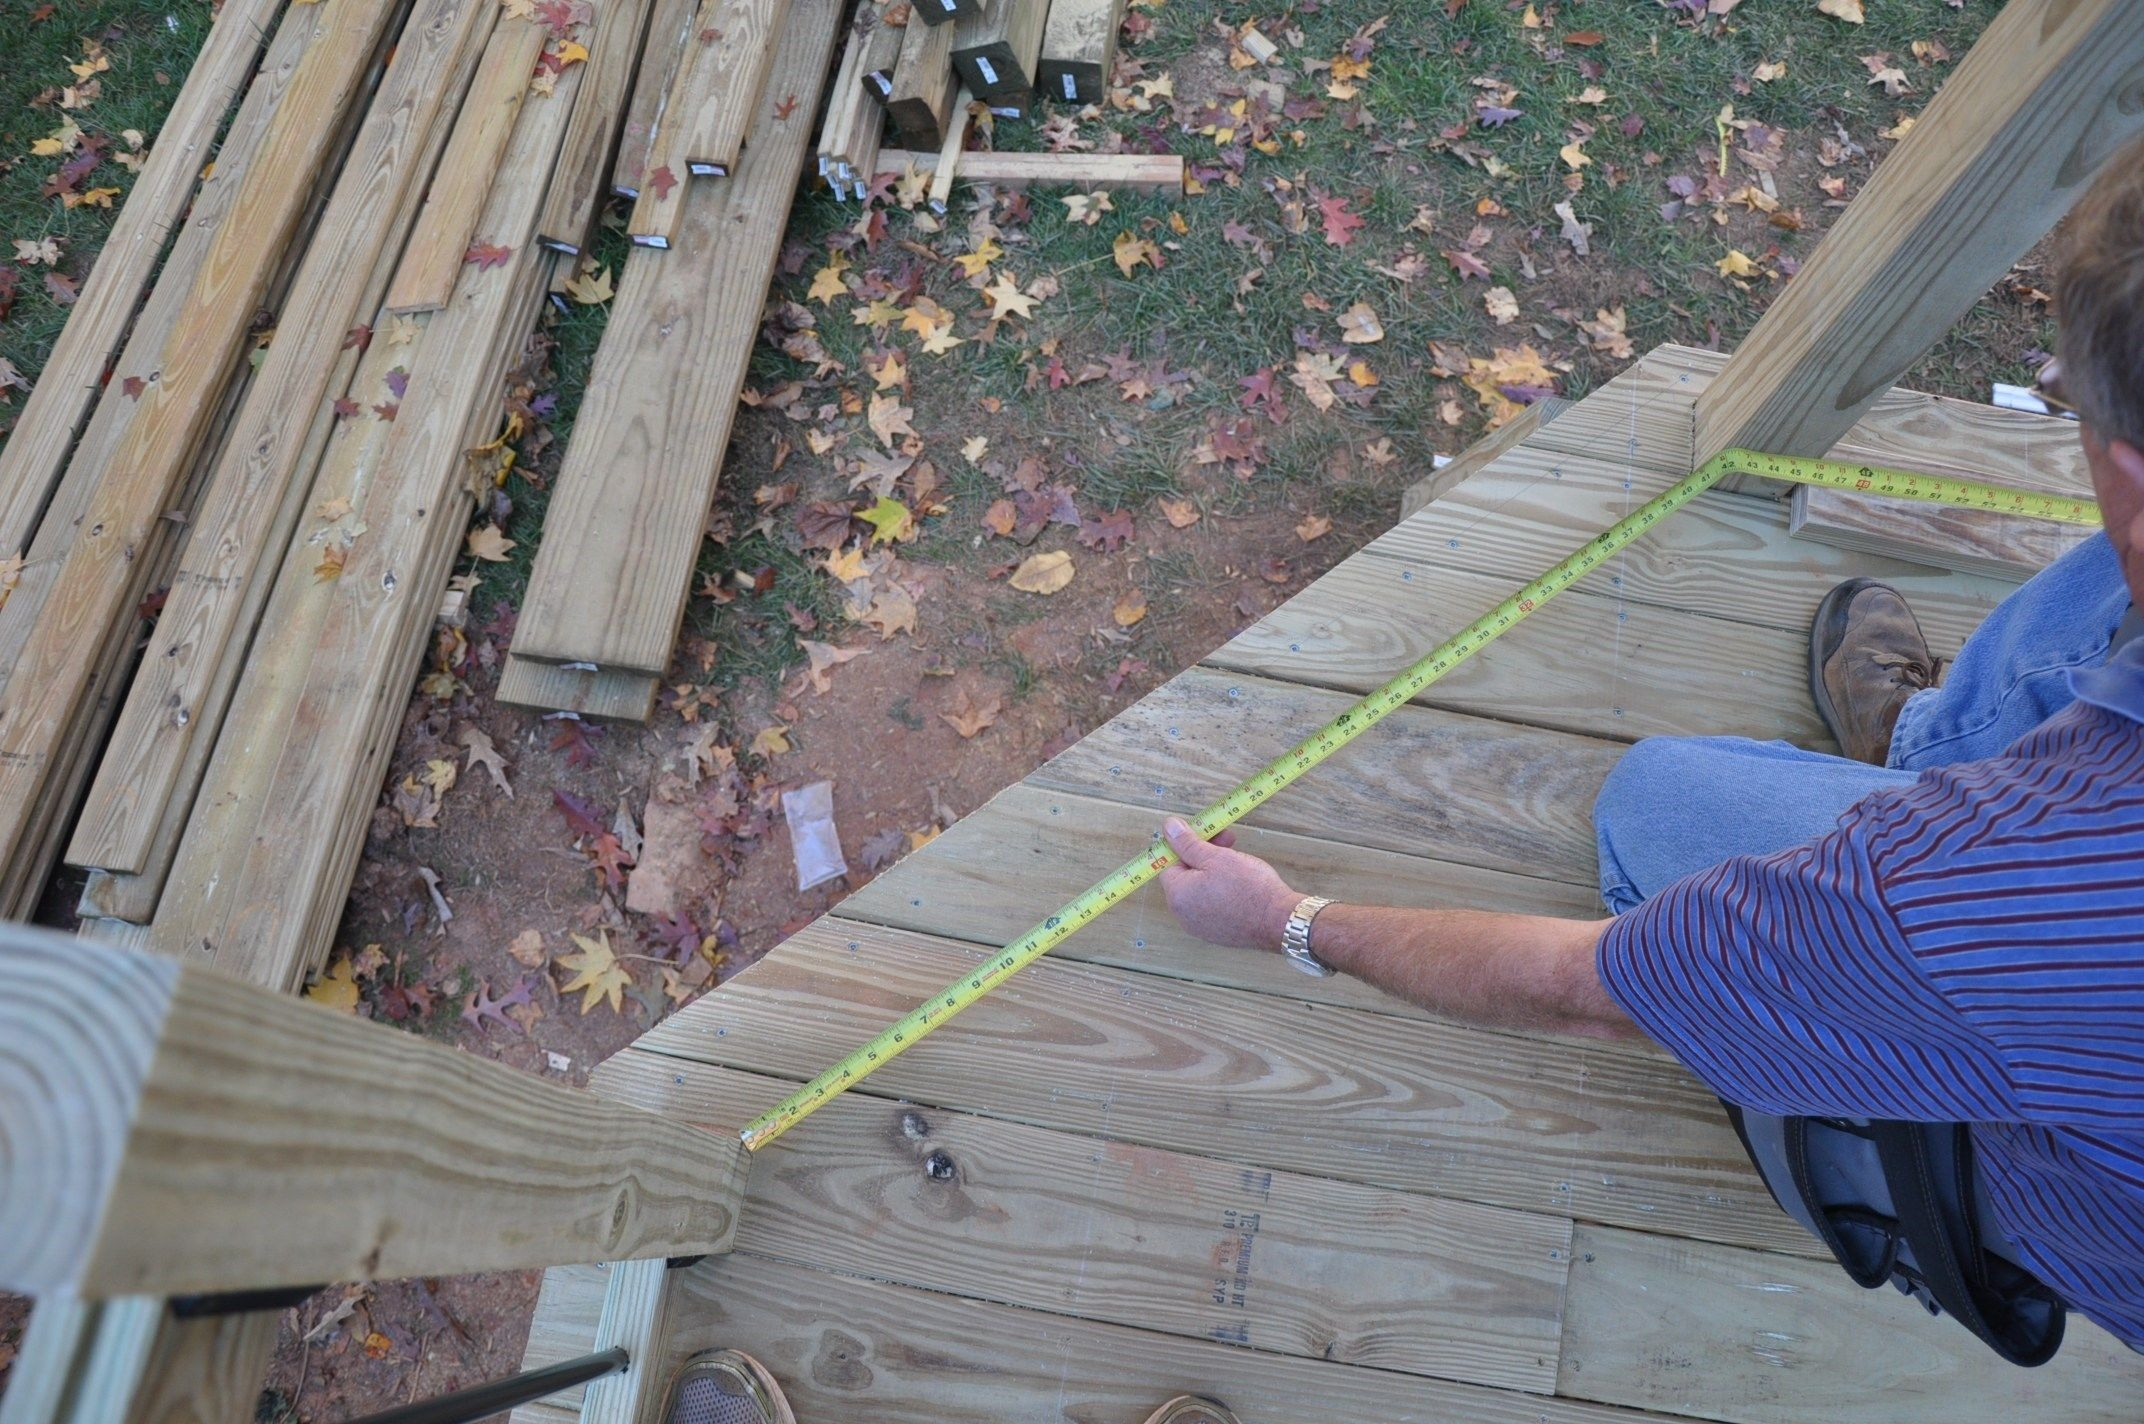 How To Install Deck Rail Balusters Decks Com   Installing Wood Balusters On An Angle   Stair Parts   Stair Spindles   Banister   Knee Wall   Handrails